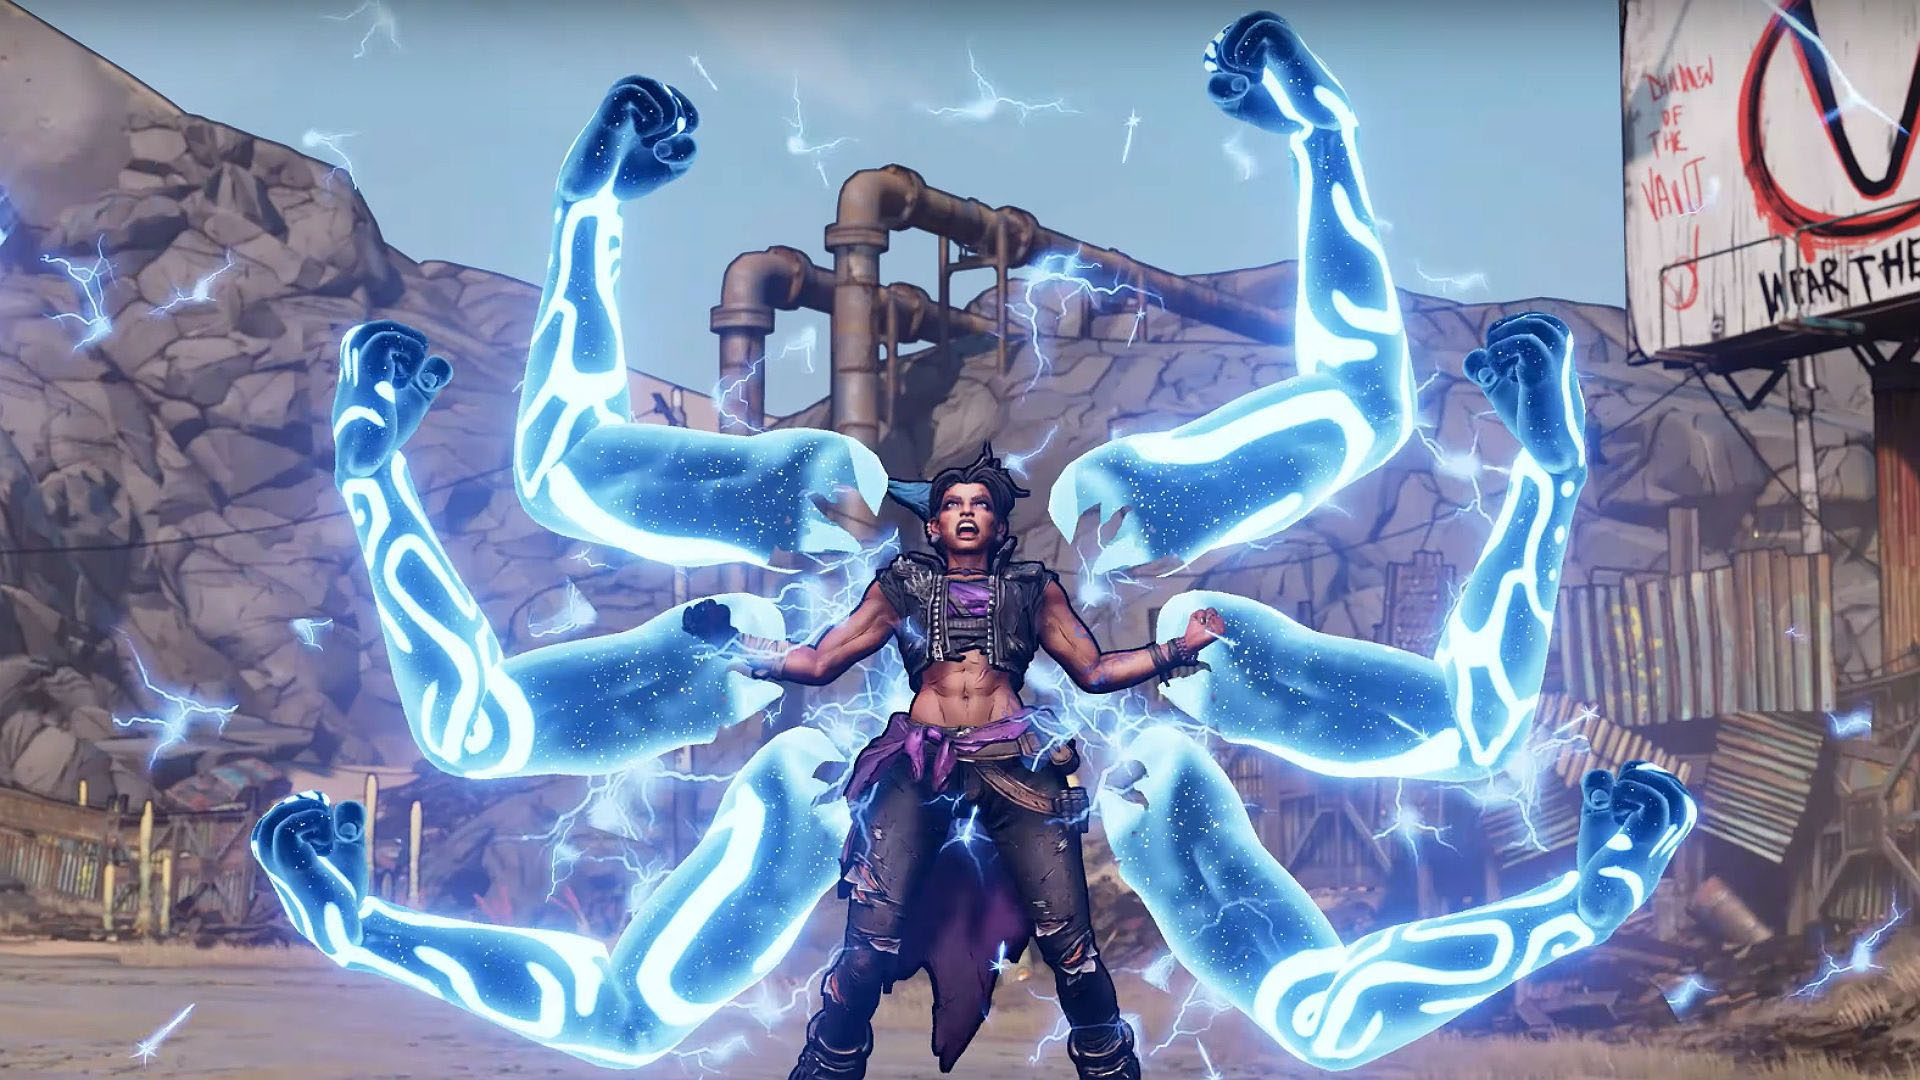 Borderlands 3 takes place years after the last game